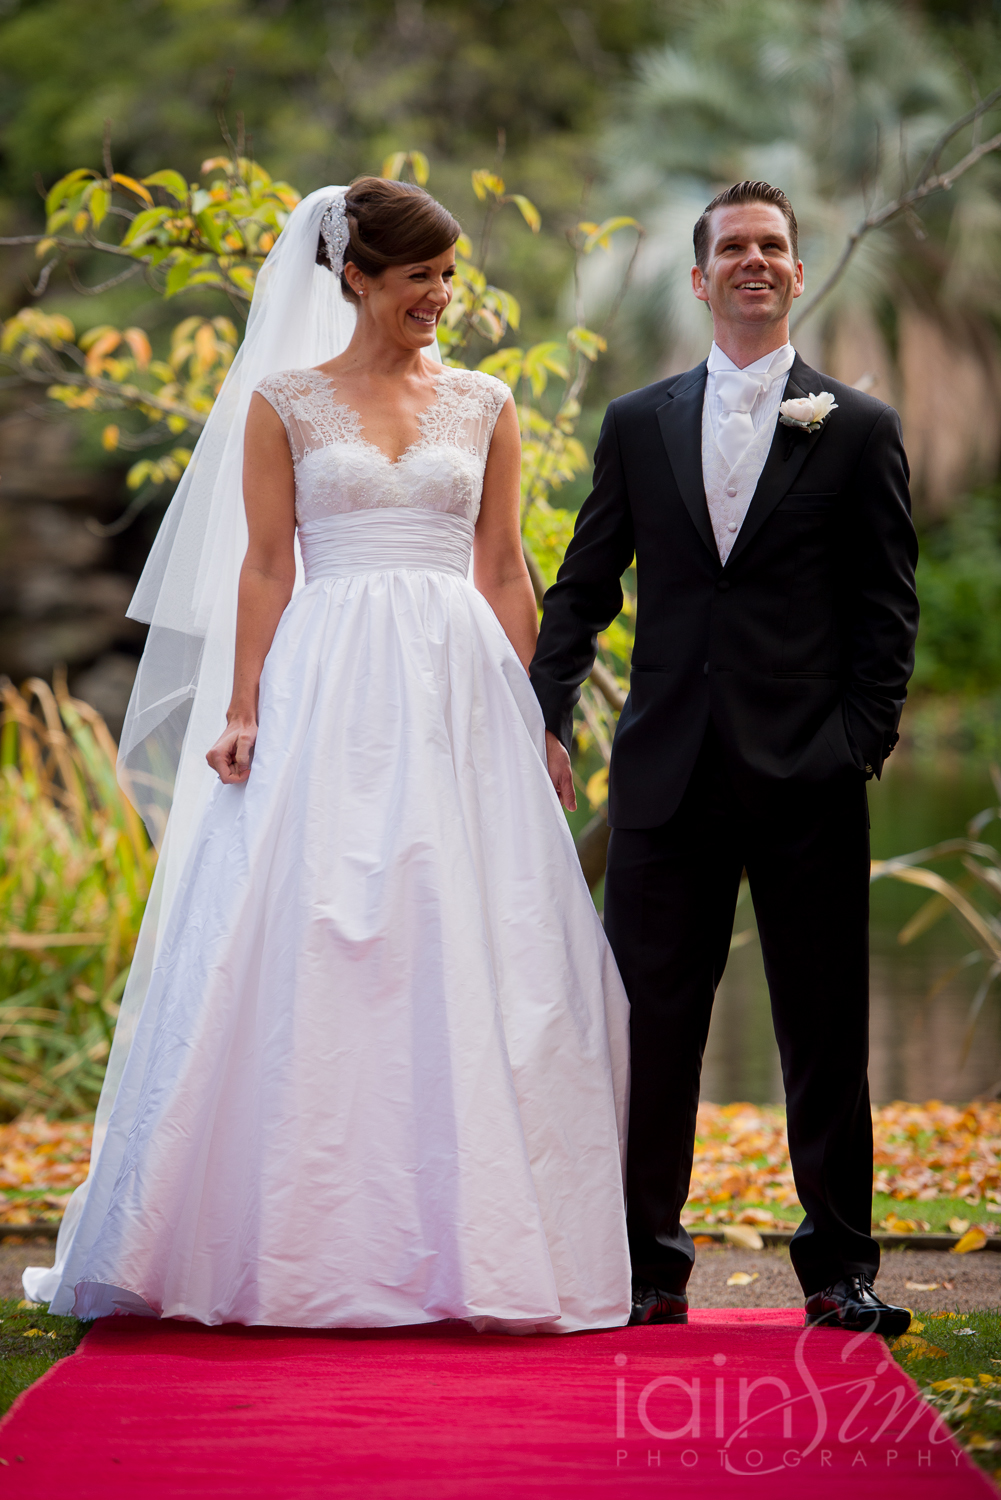 wpid-Katherine-and-Marks-RipponLea-Wedding-by-Iain-Sim-Photography_017.jpg